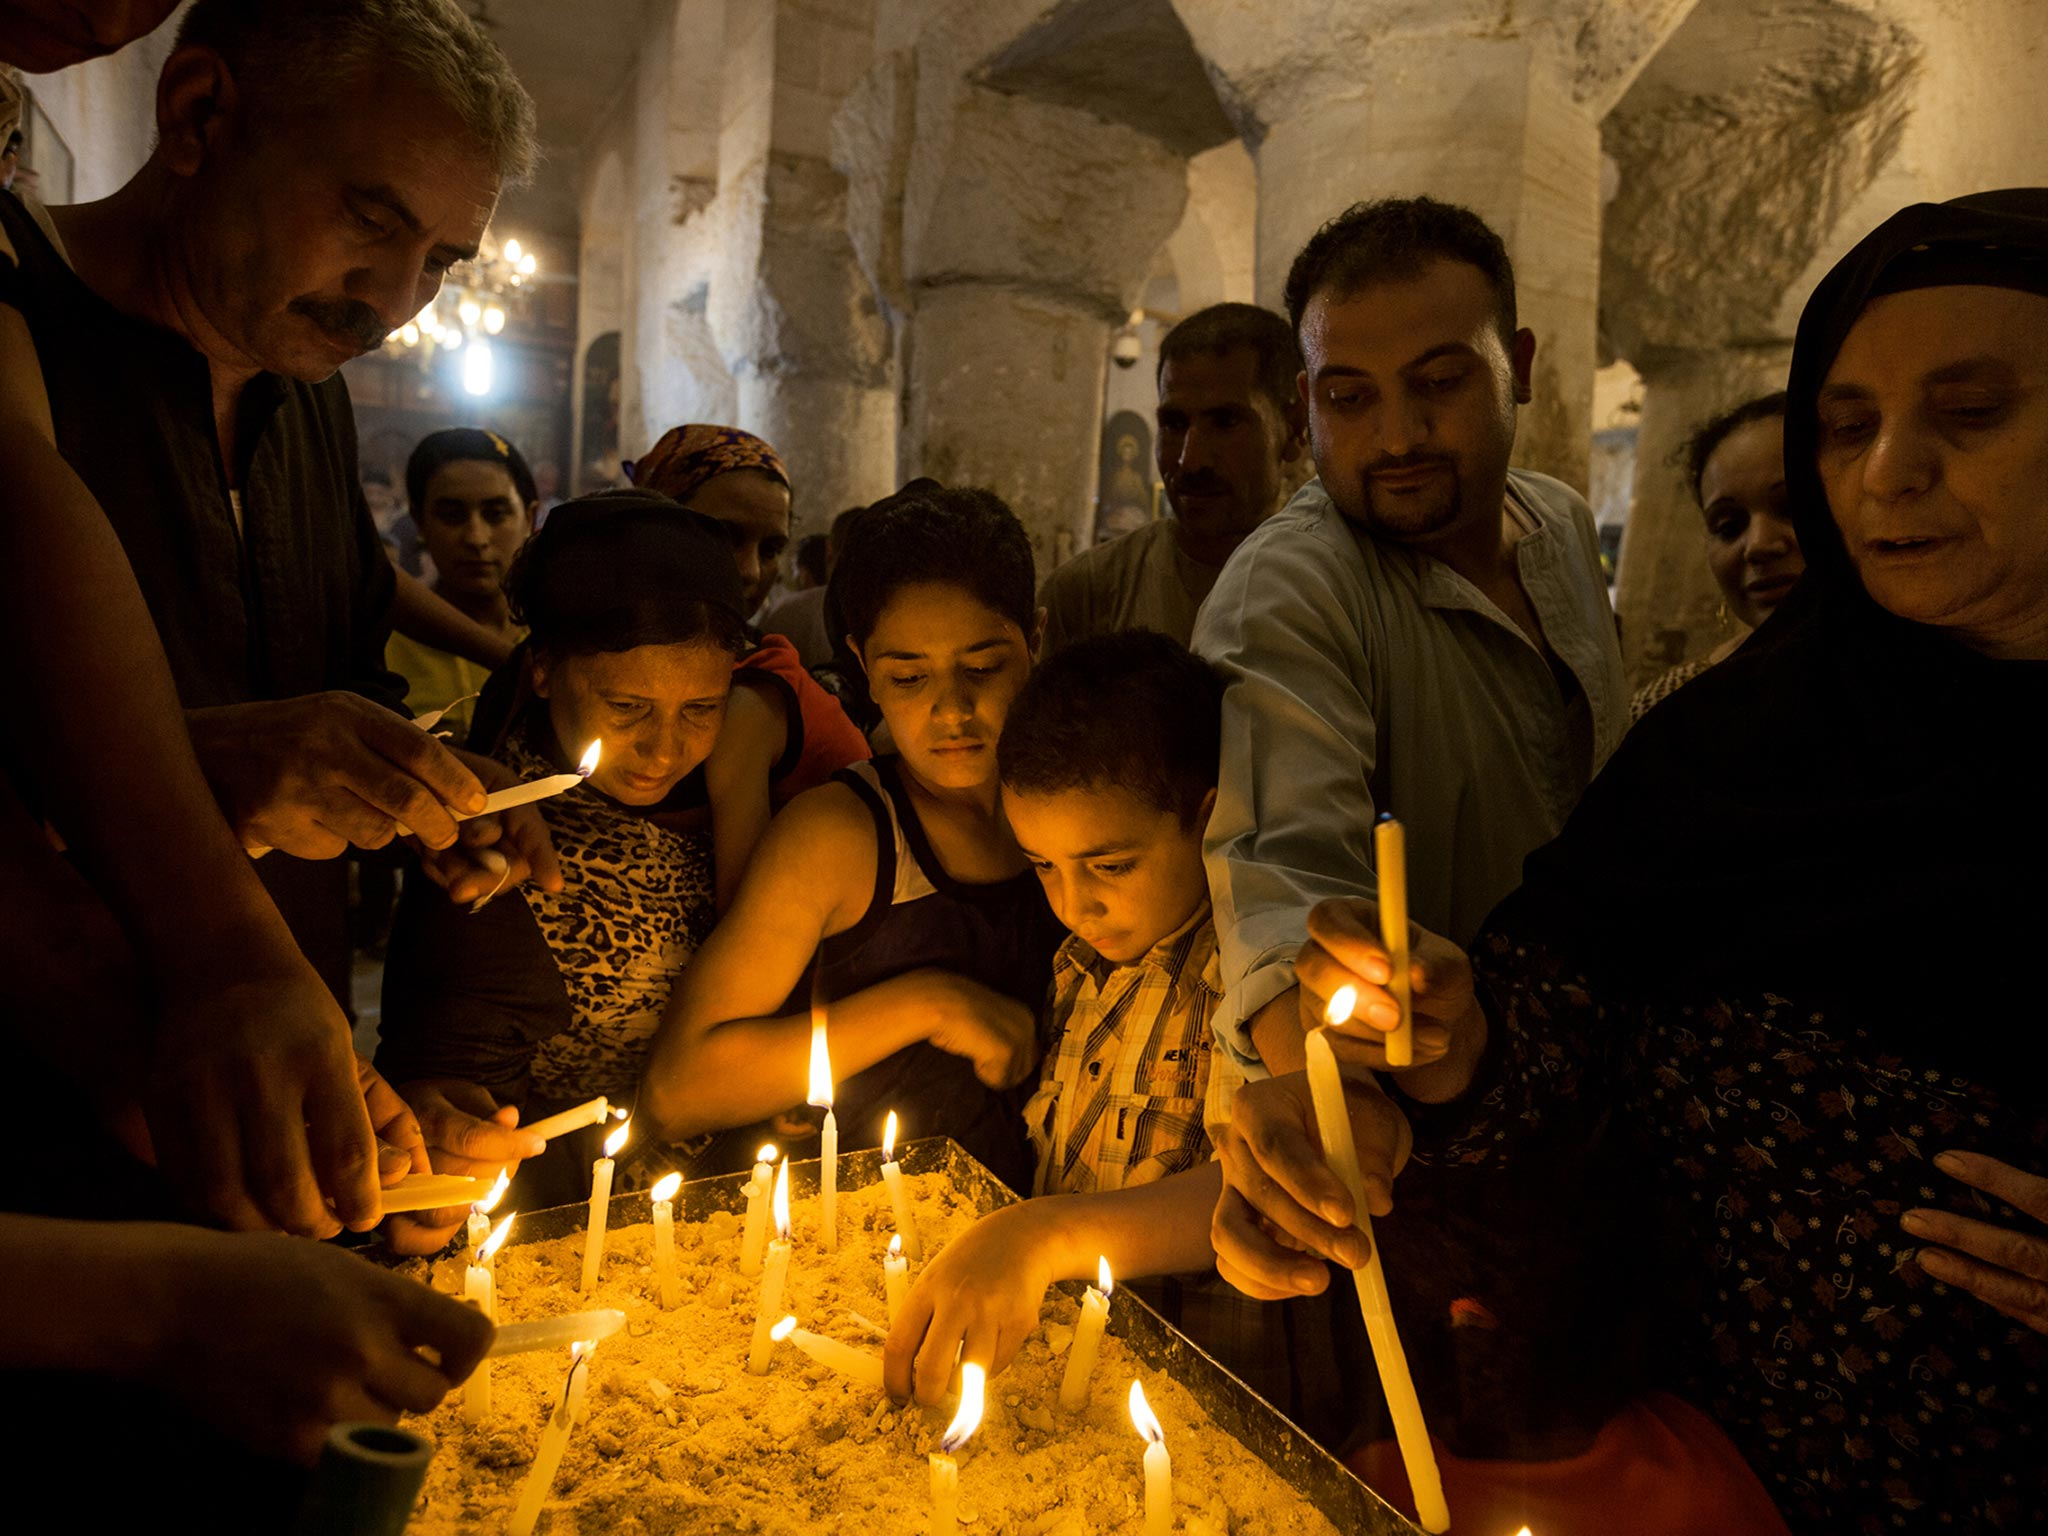 In the Deir al Adra monastery, in Minya, Egypt, Muslims and Christians alike light candles to commemorate the Holy Family's stay during their biblical flight into Egypt. A Marian festival here draws two million of the faithful each year.